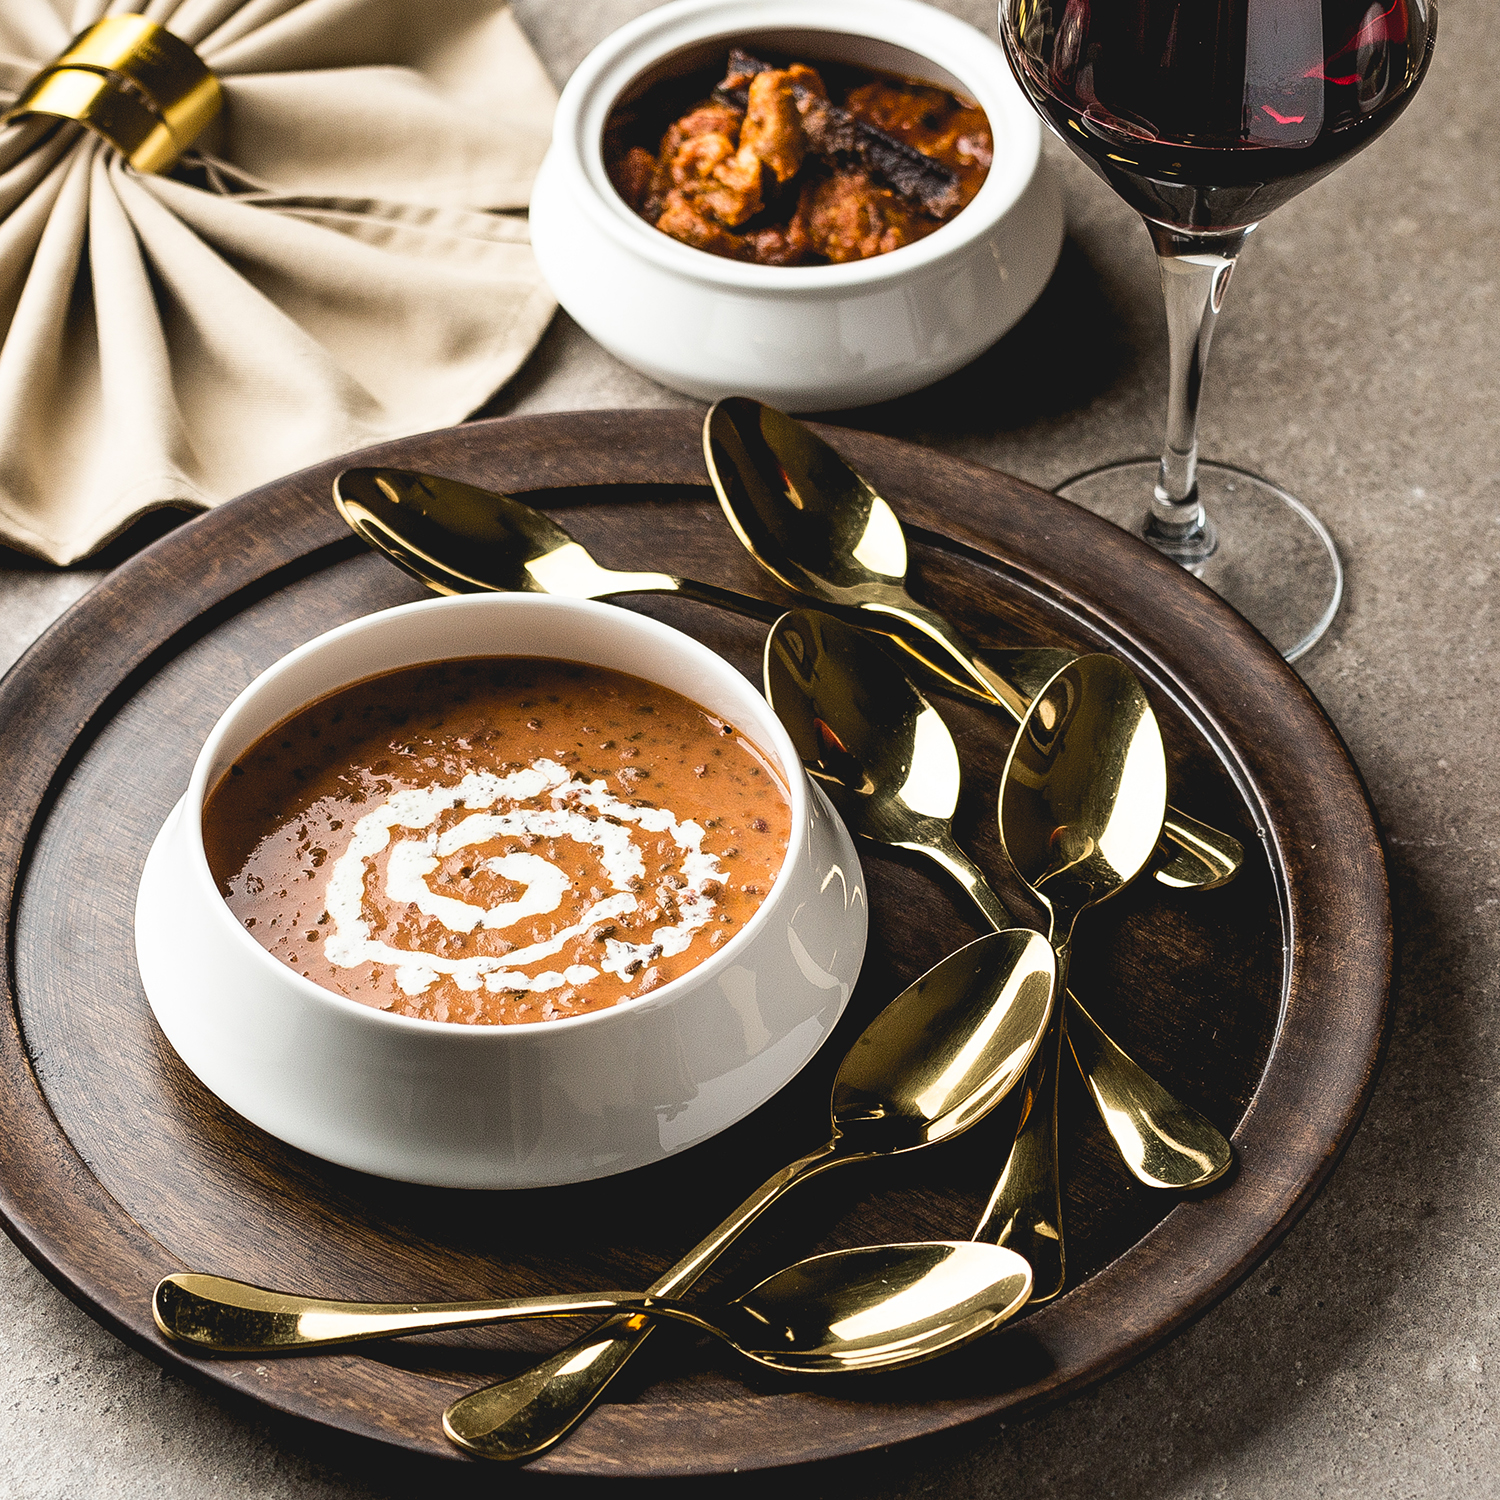 DAL MAKHANI – QUEEN OF ALL DALS!